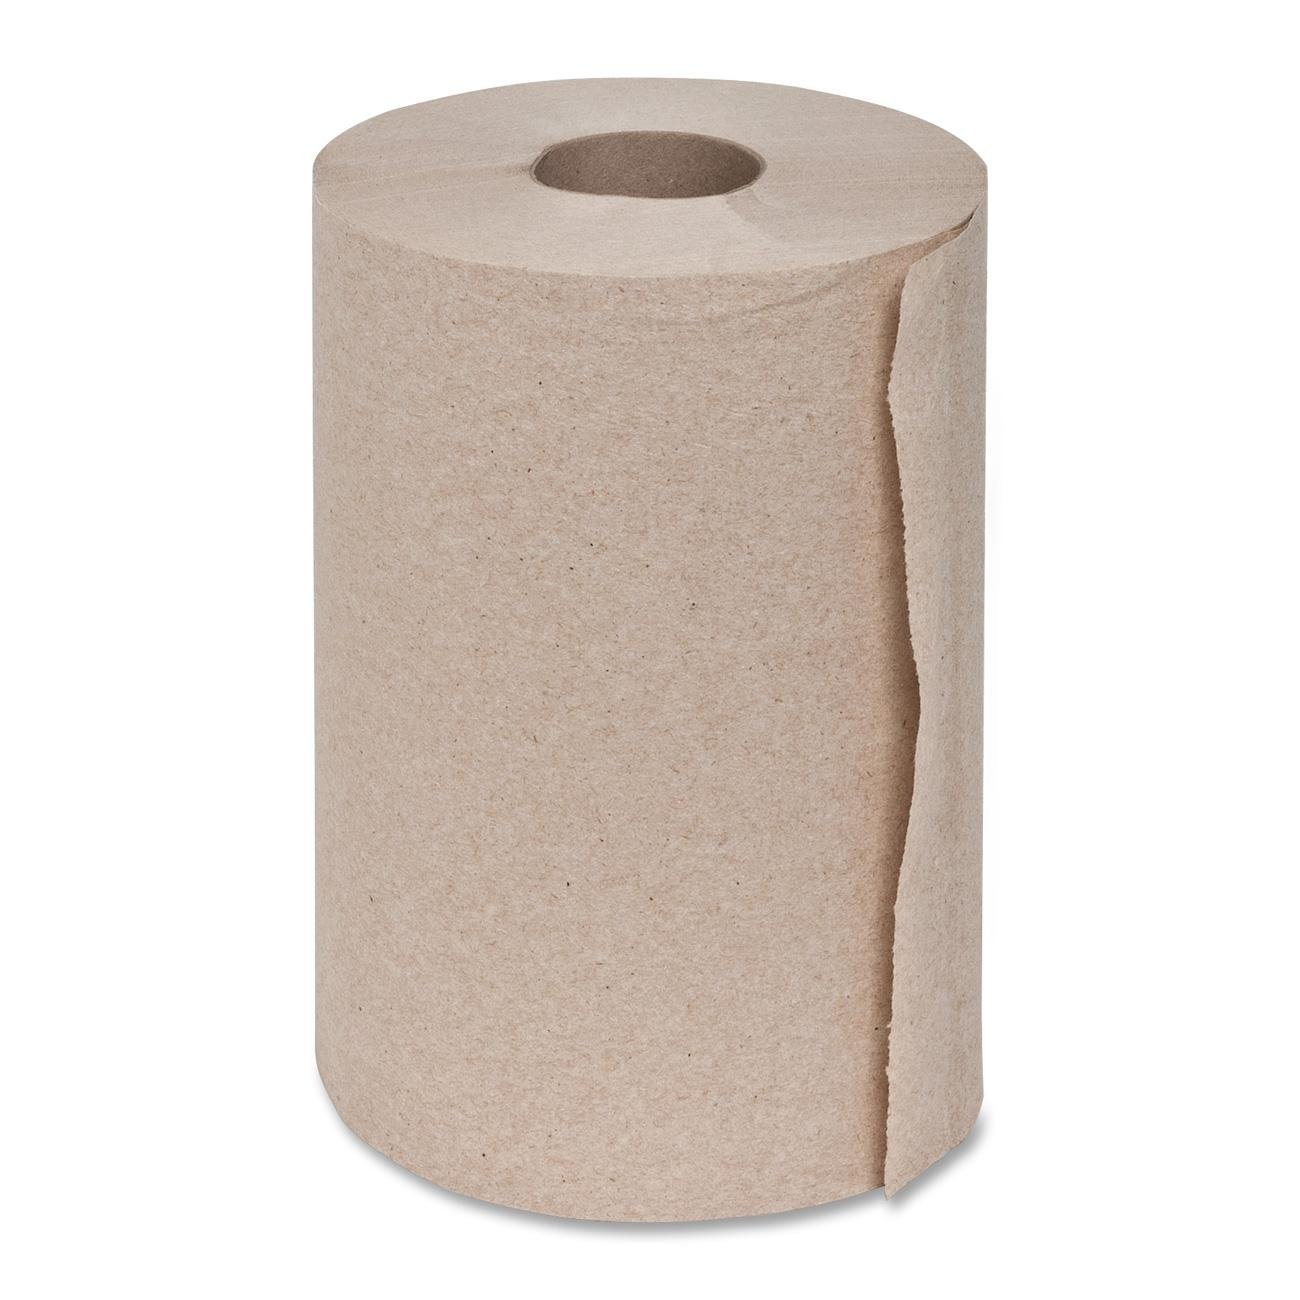 Genuine Joe GJO22200 Hard Wound Roll Towel, 350' Length x 7-8/9'' Width, Natural (Case of 12) (24 Rolls)